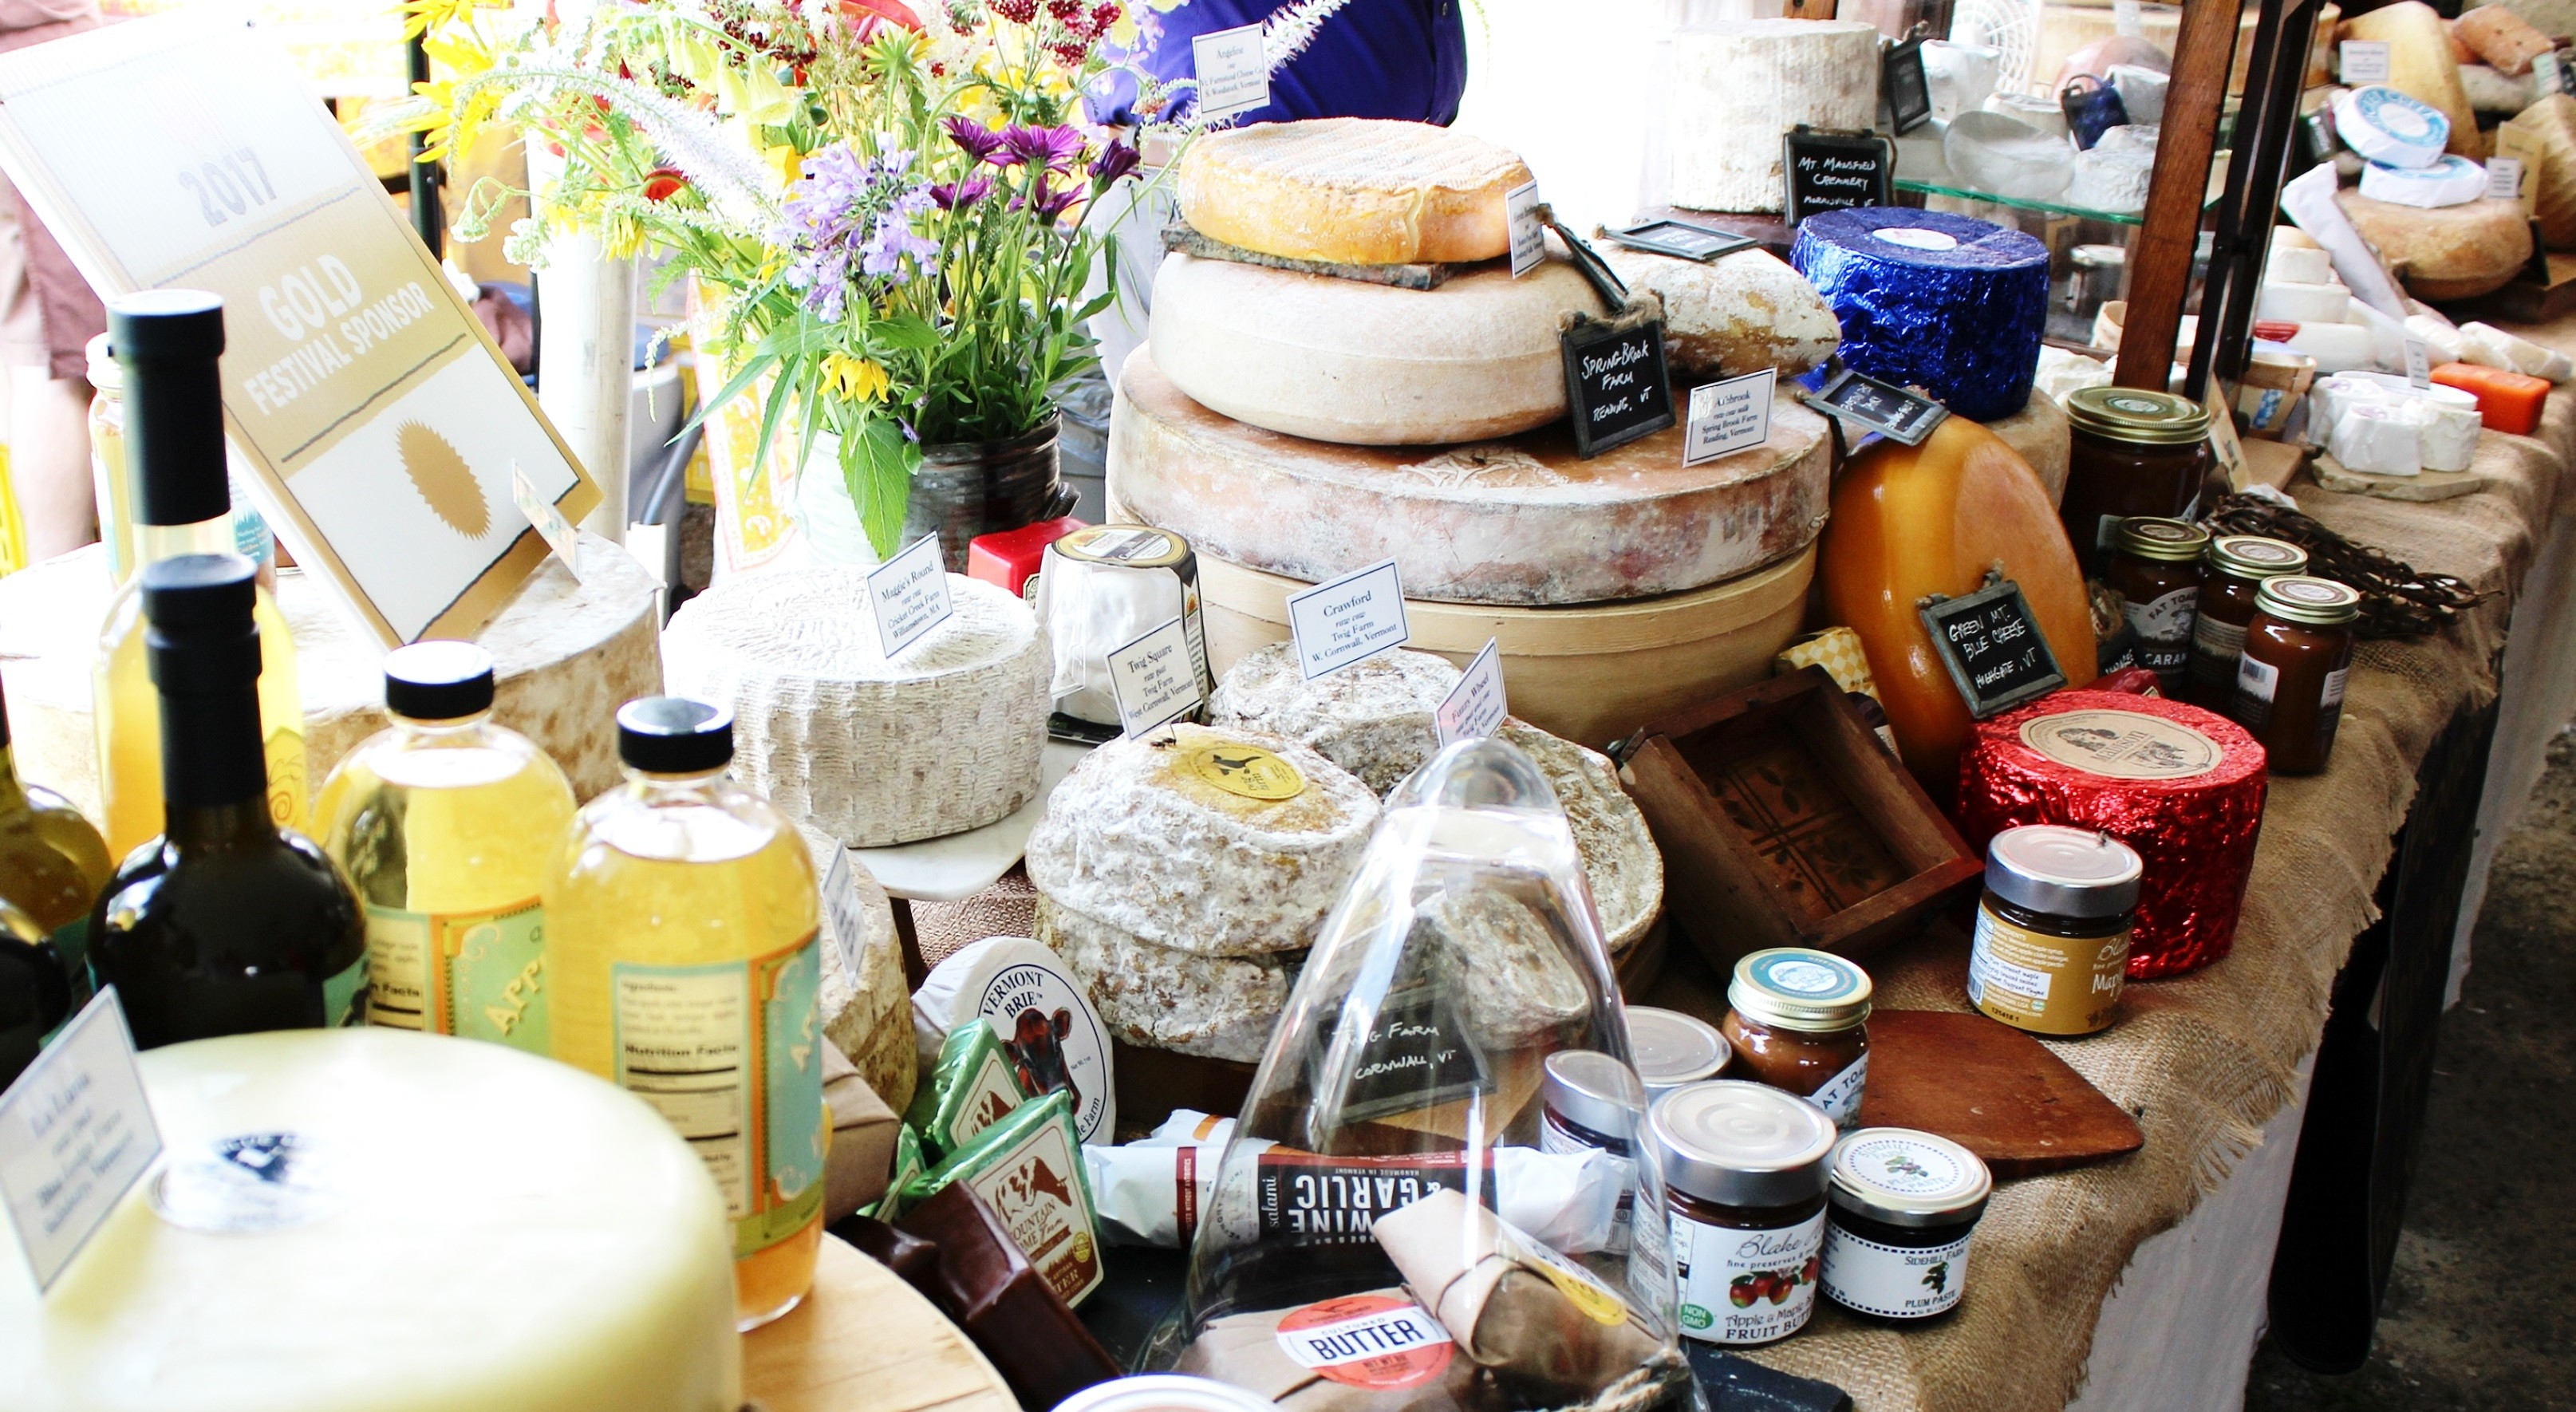 Vermont Cheesemakers Festival at Shelburne Farms near Heart of the Village Inn Bed and Breakfast Shelburne VT